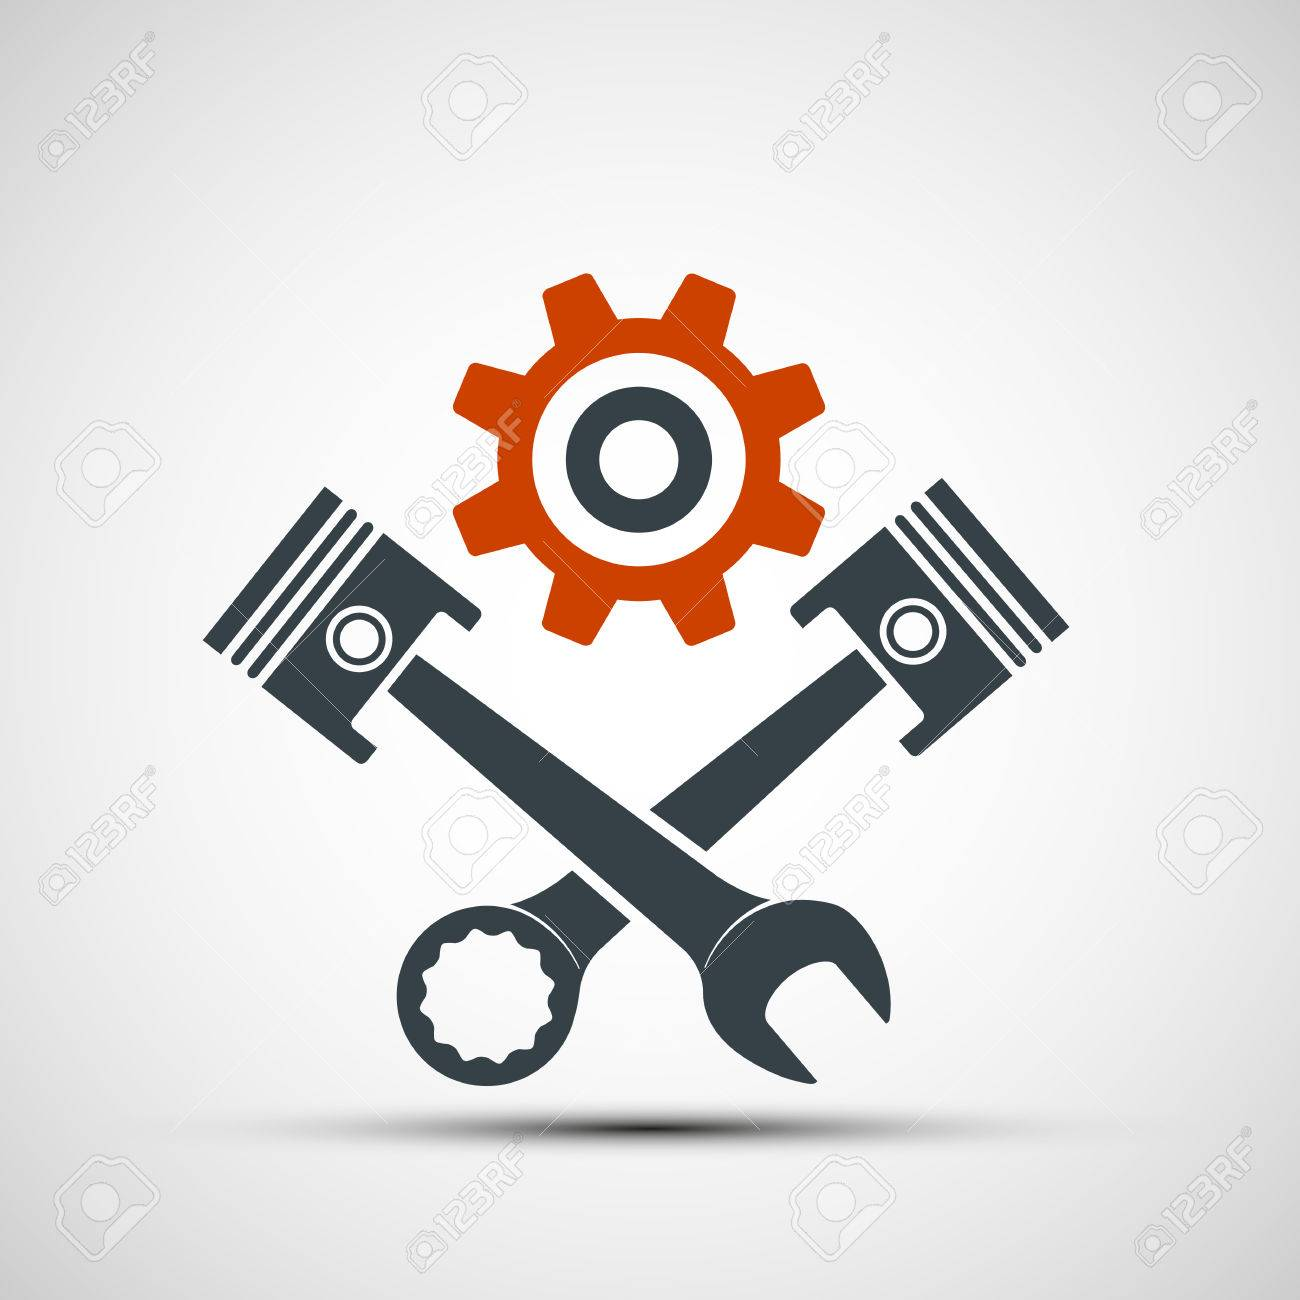 Logo engine with plungers and a wrench. Stock vector illustration. - 58748722